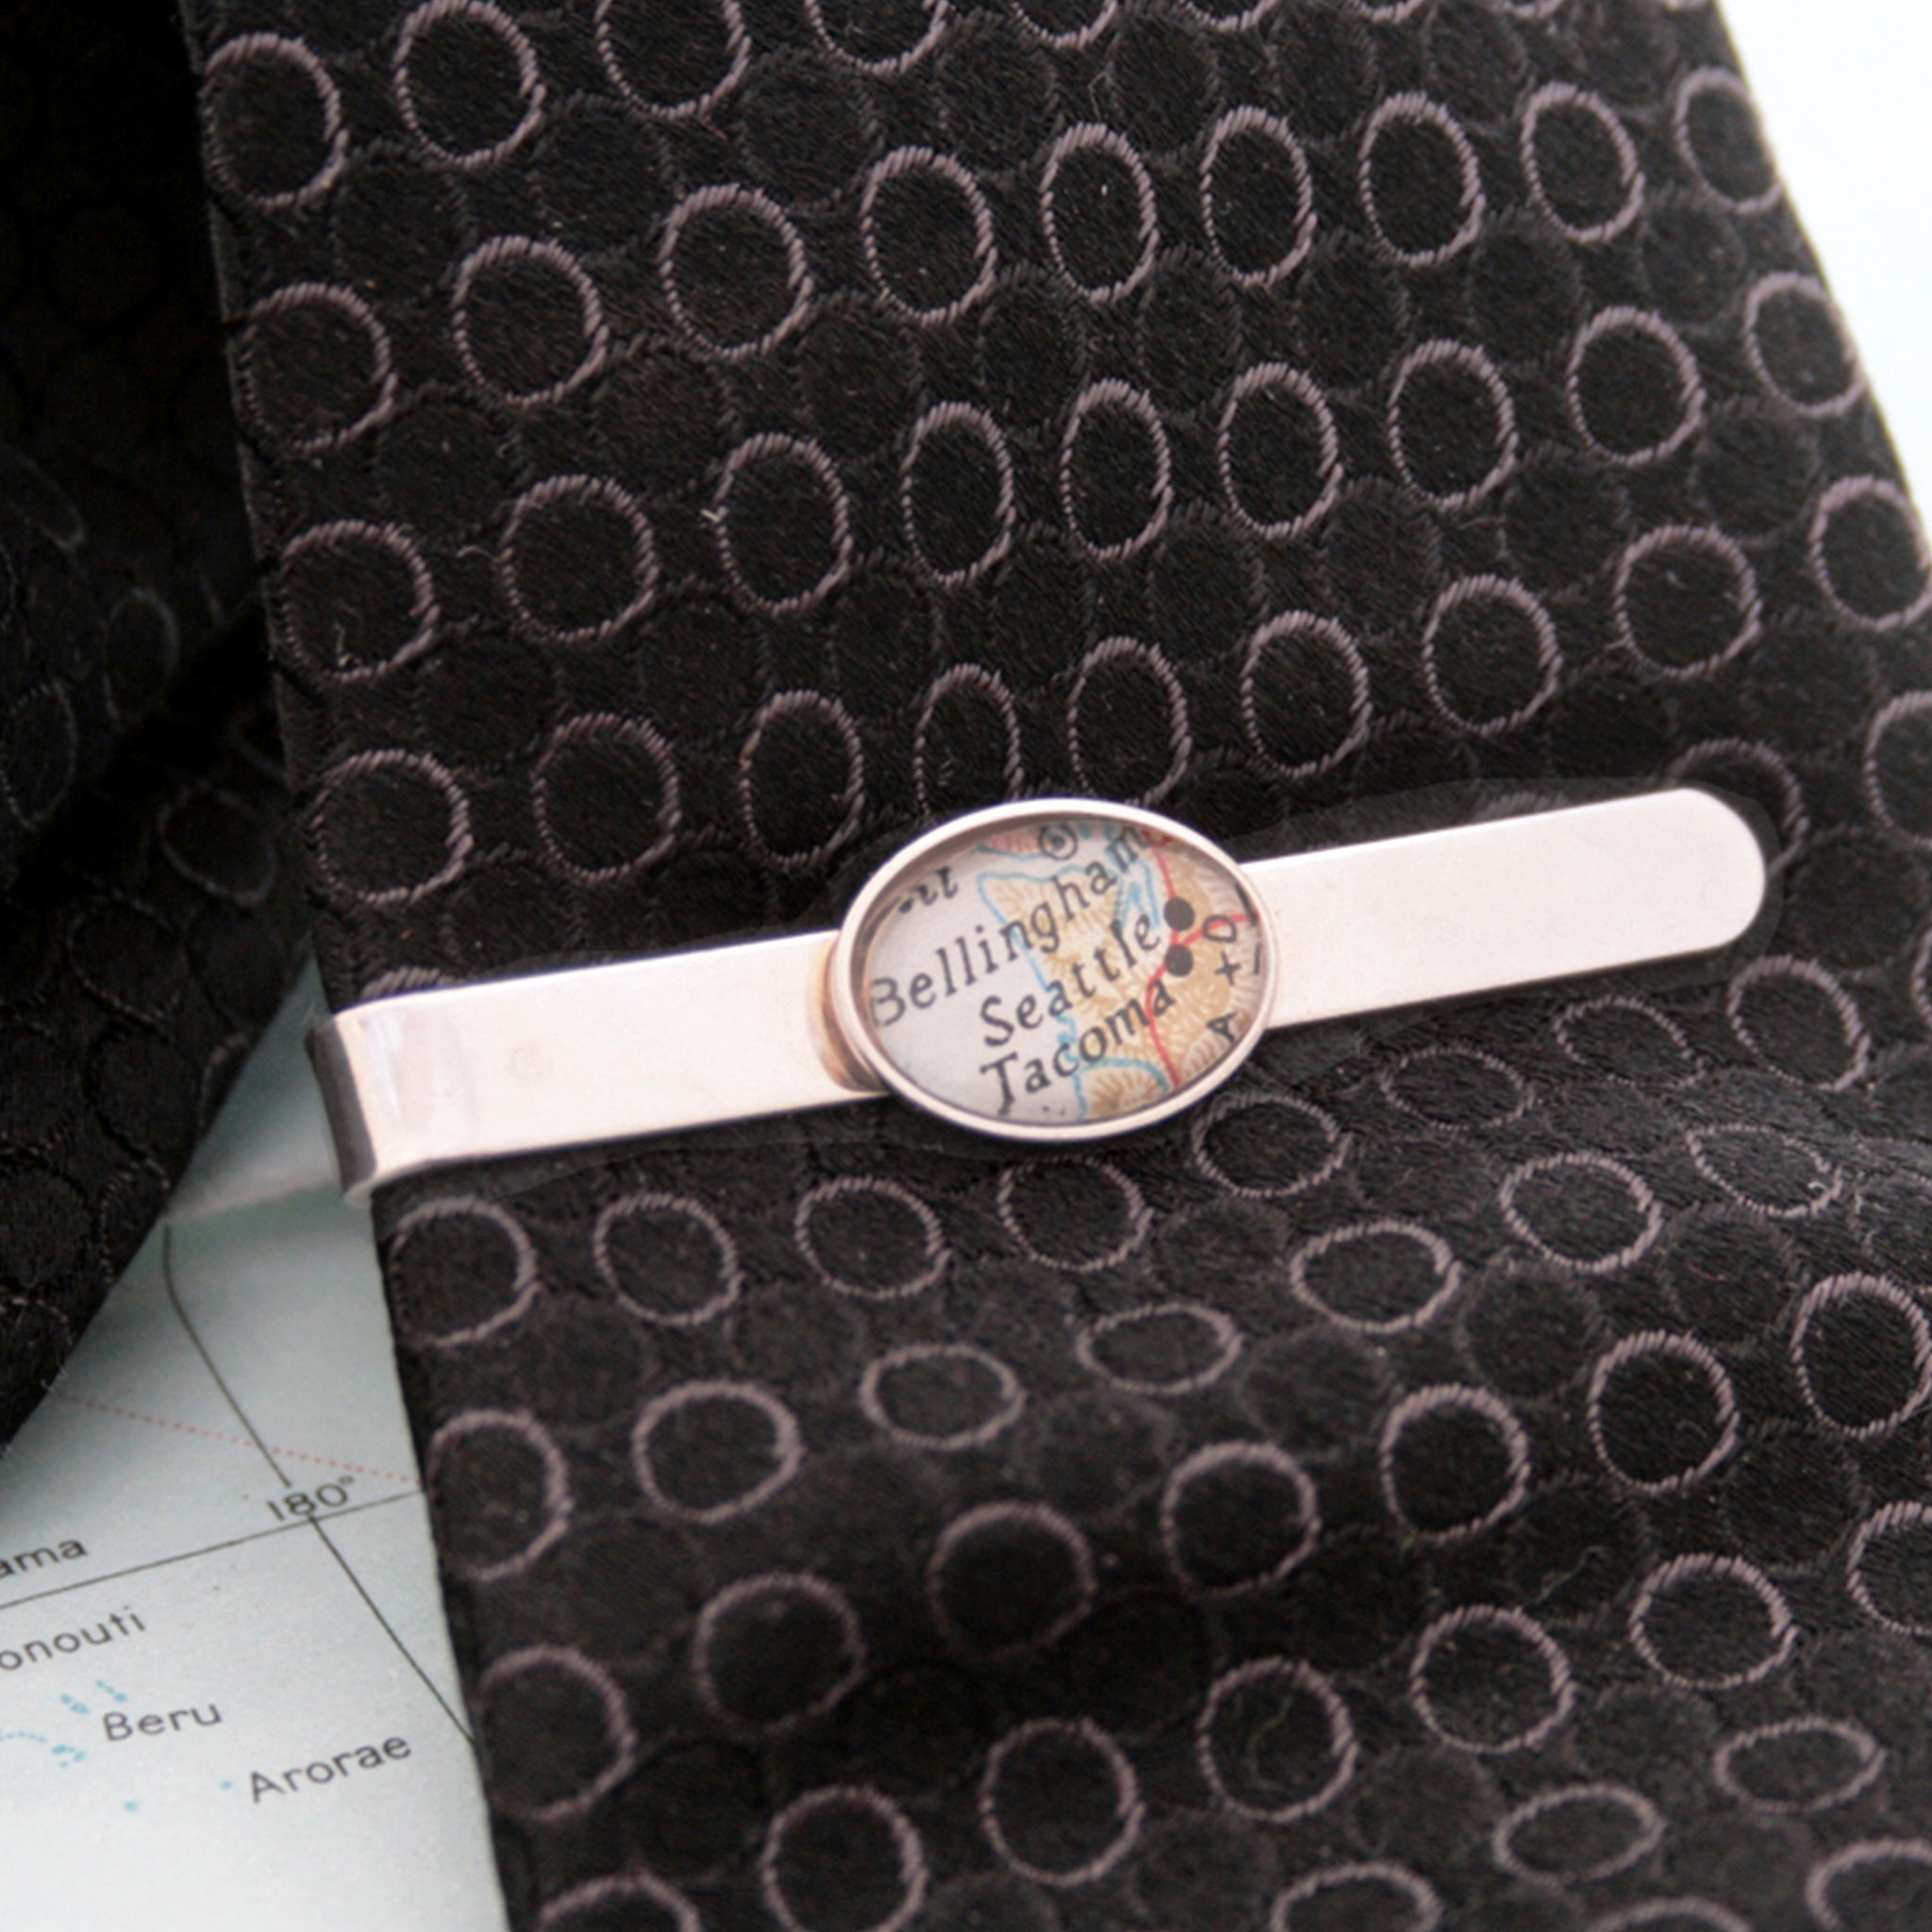 Sterling Silver tie clip that features custom map location on a black tie